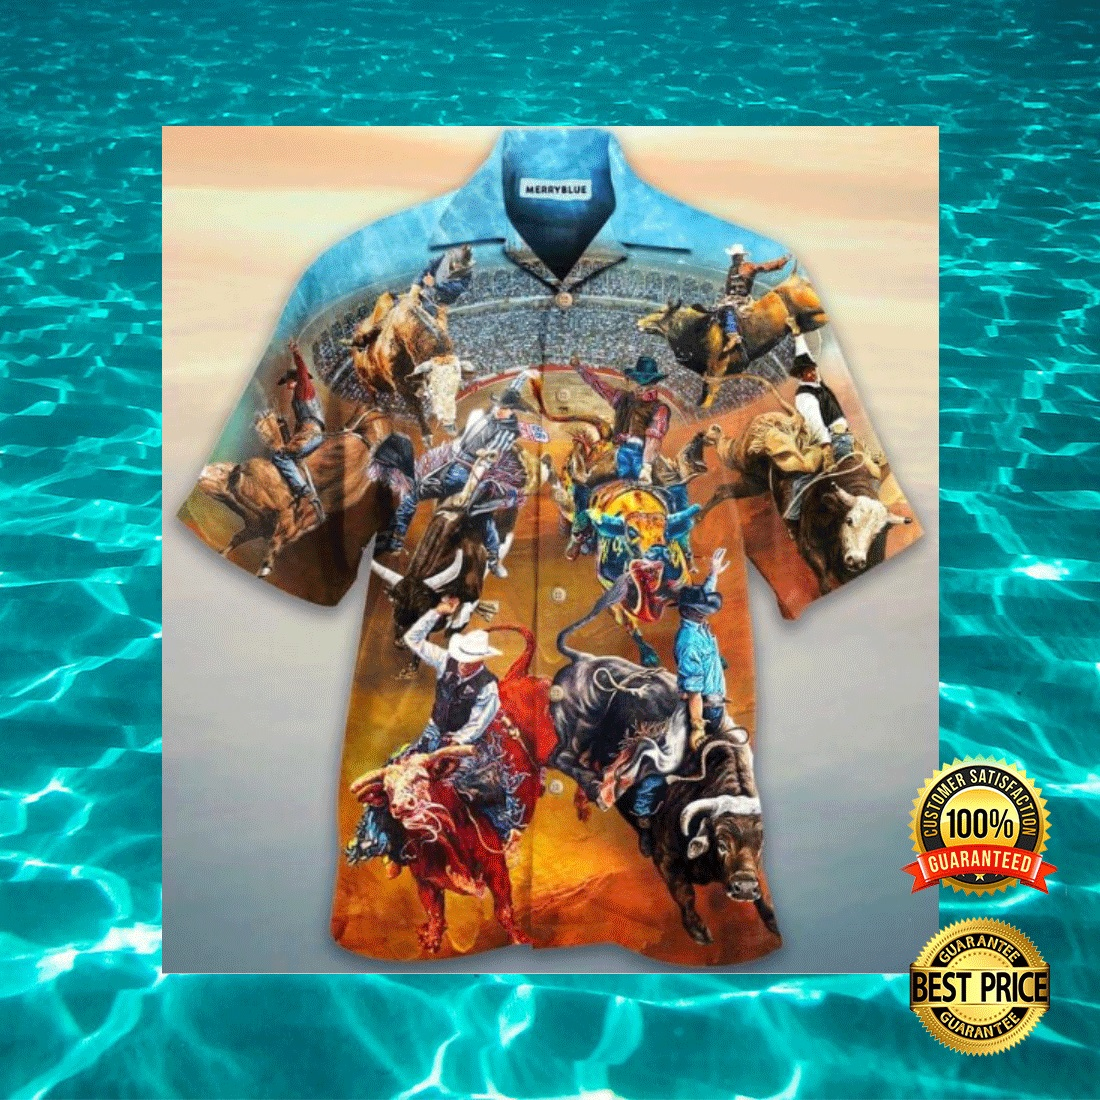 RODEO LIFE IS THE BEST LIFE HAWAIIAN SHIRT 6